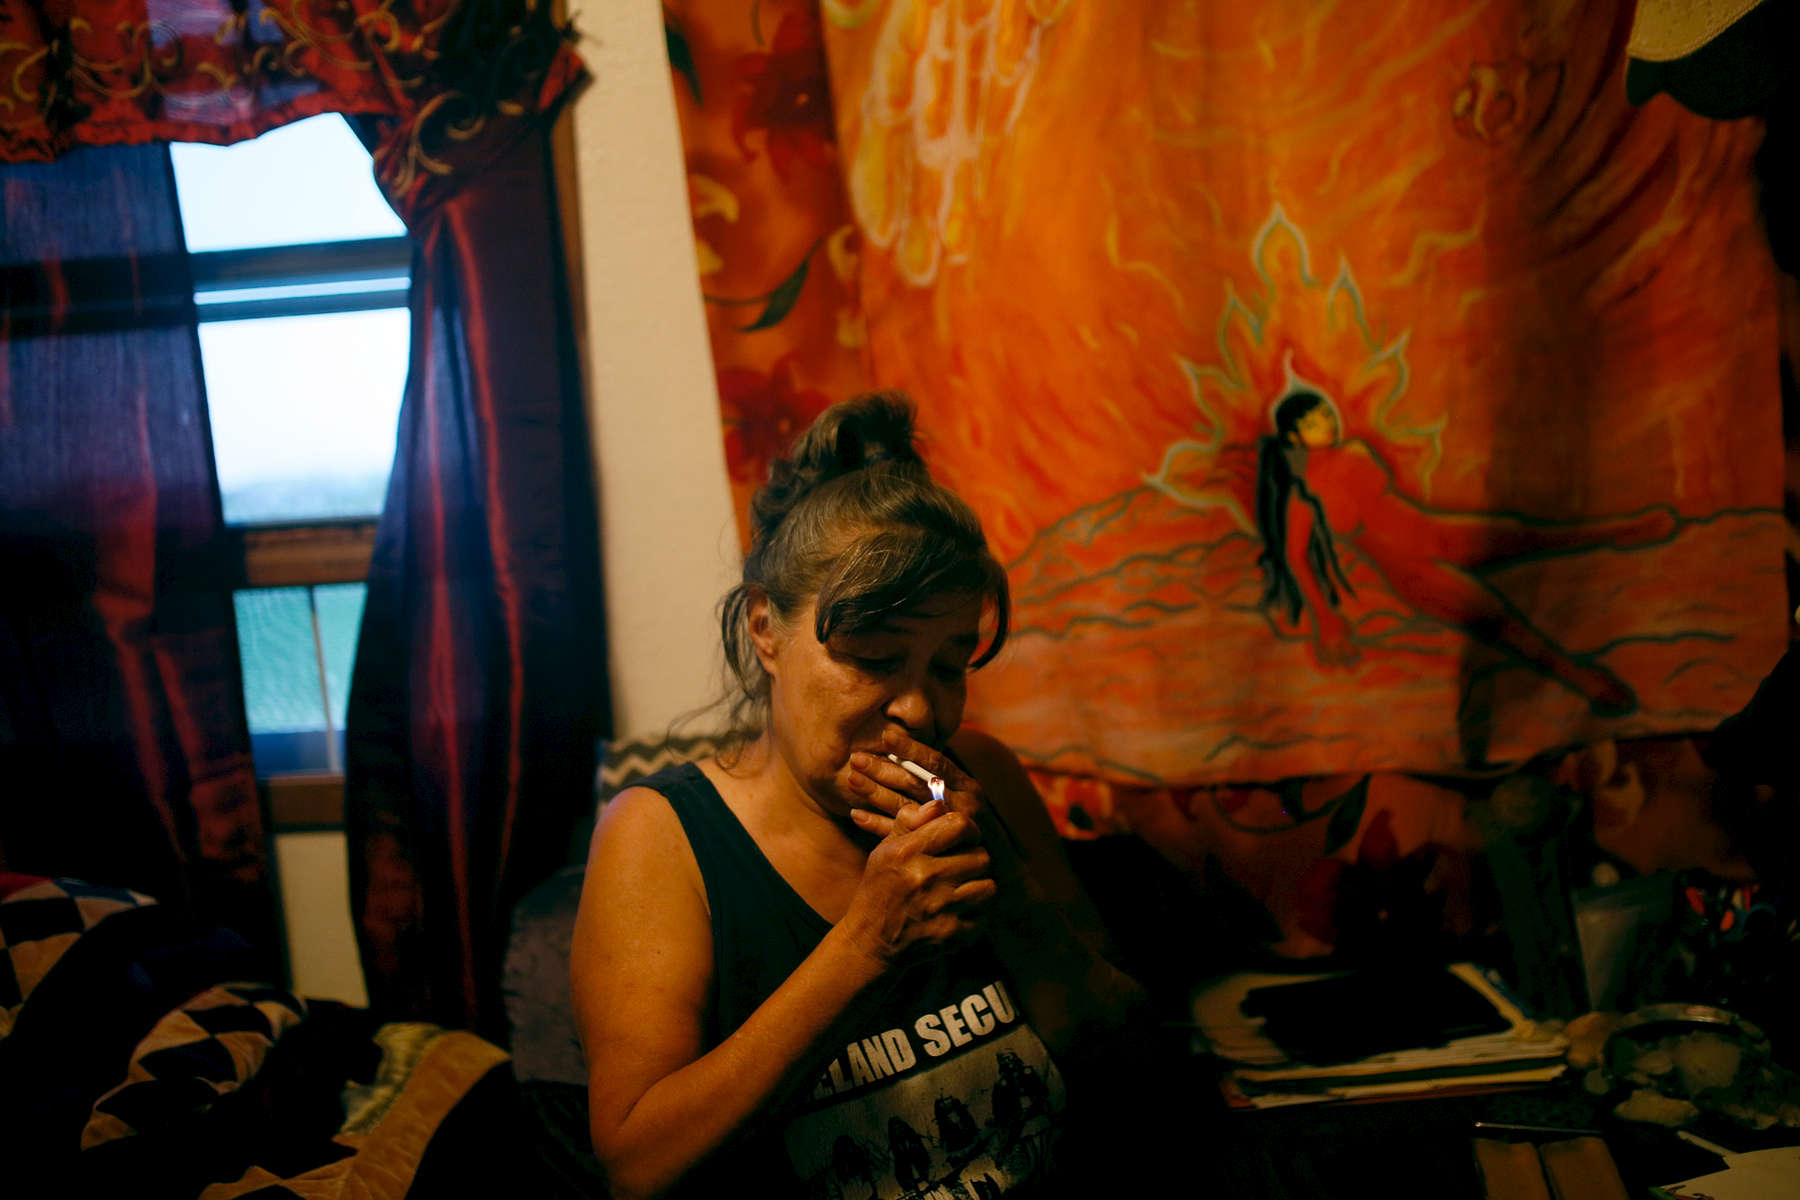 Heart Warrior lights a cigarette in her room. The space is decorated with paintings by both herself and her son Shaun.